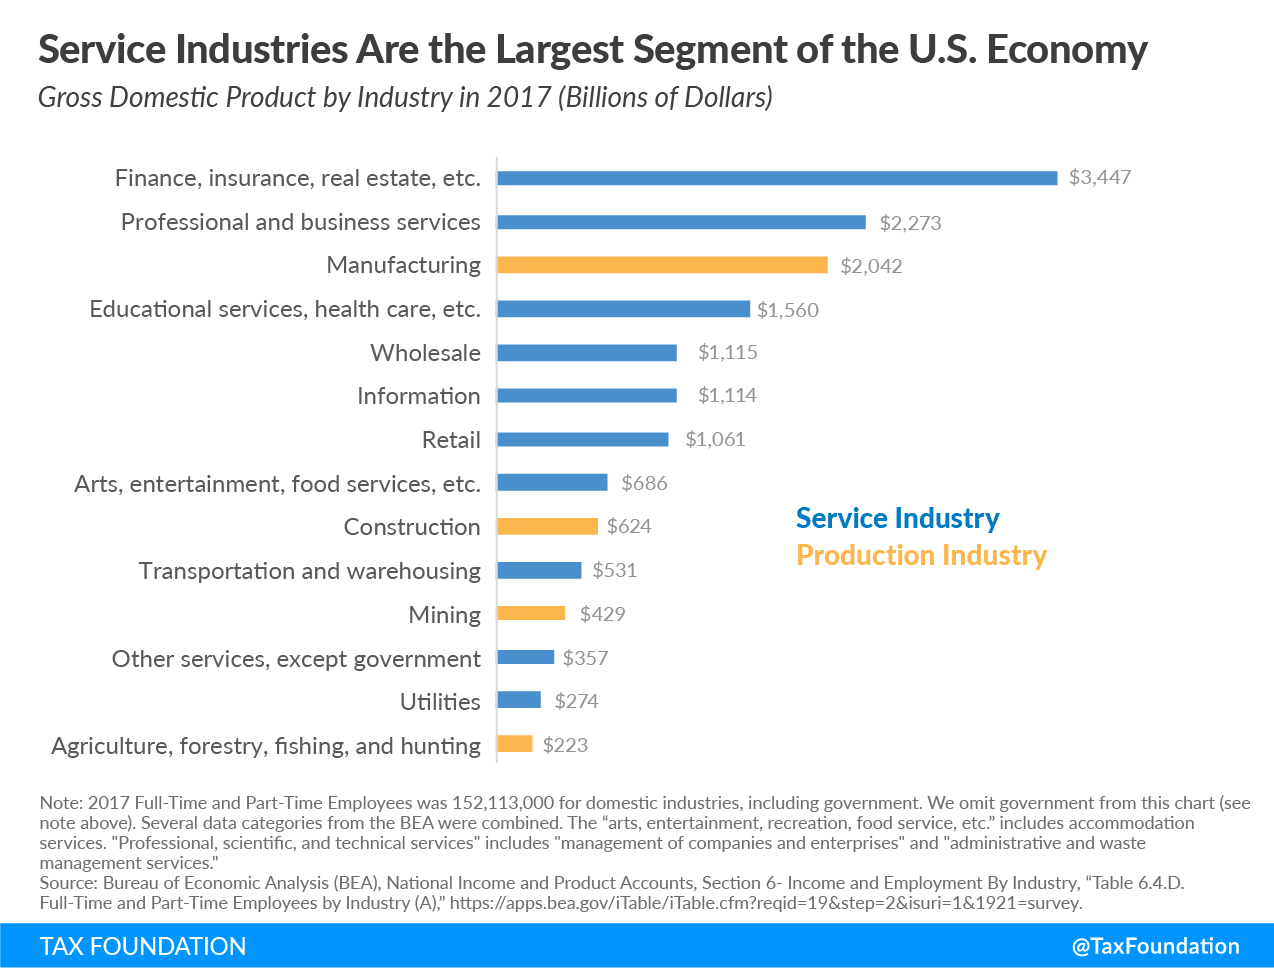 Service industries are the largest segment of the U.S. economy, finance, insurance, real estate, professional and business services, manufacturing, educational services, healthcare, wholesale, retail, arts, entertainment, food services, transportation, mining, utilities, agriculture, fishing, hunting